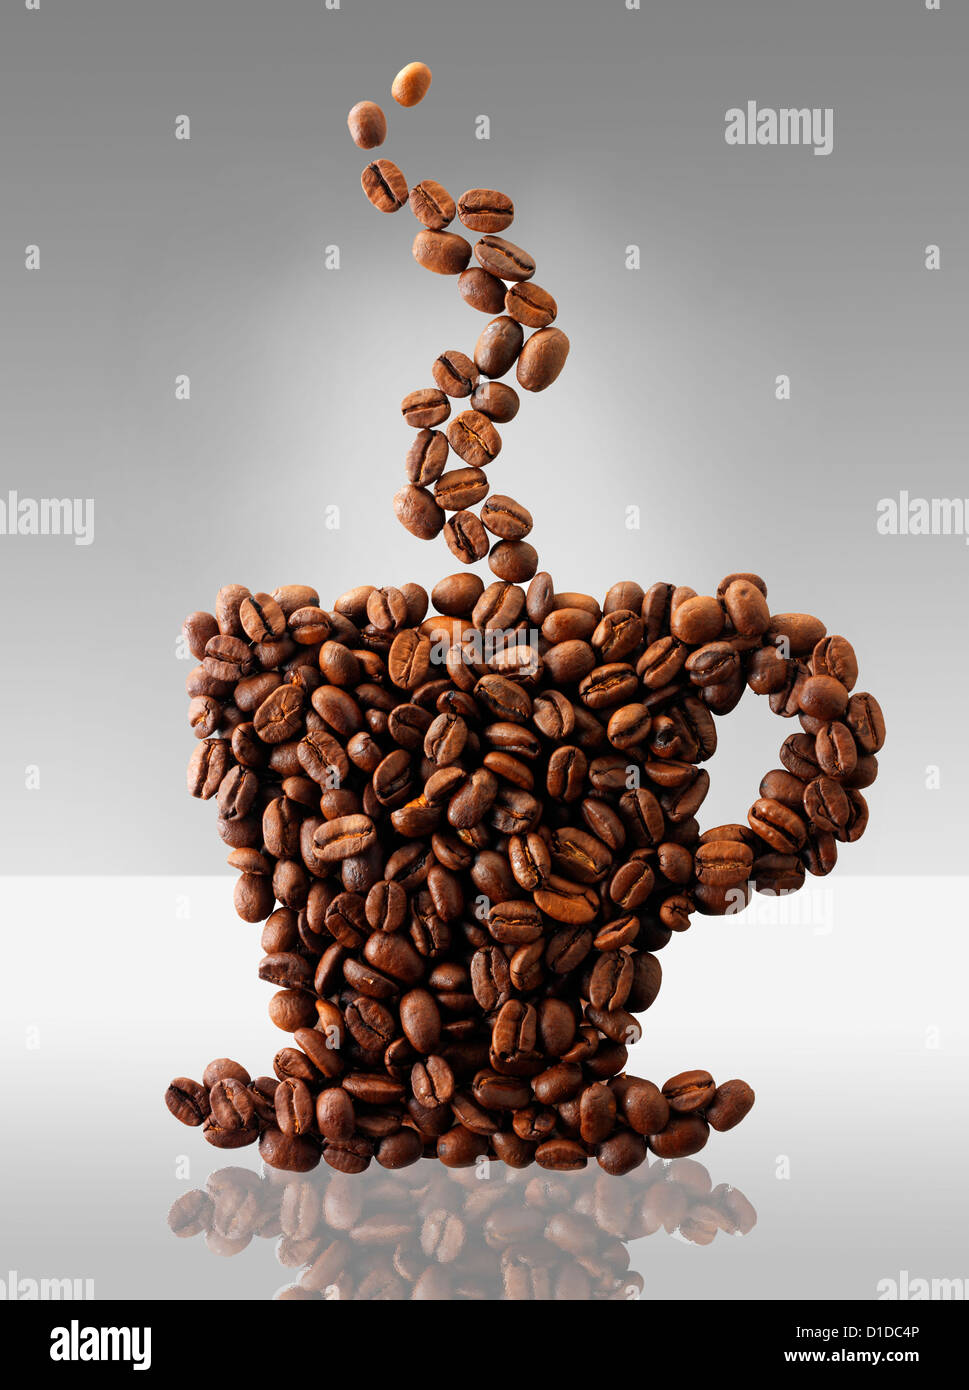 Coffee beans in the shape of a coffee cup. Stock Photo - Stock Image